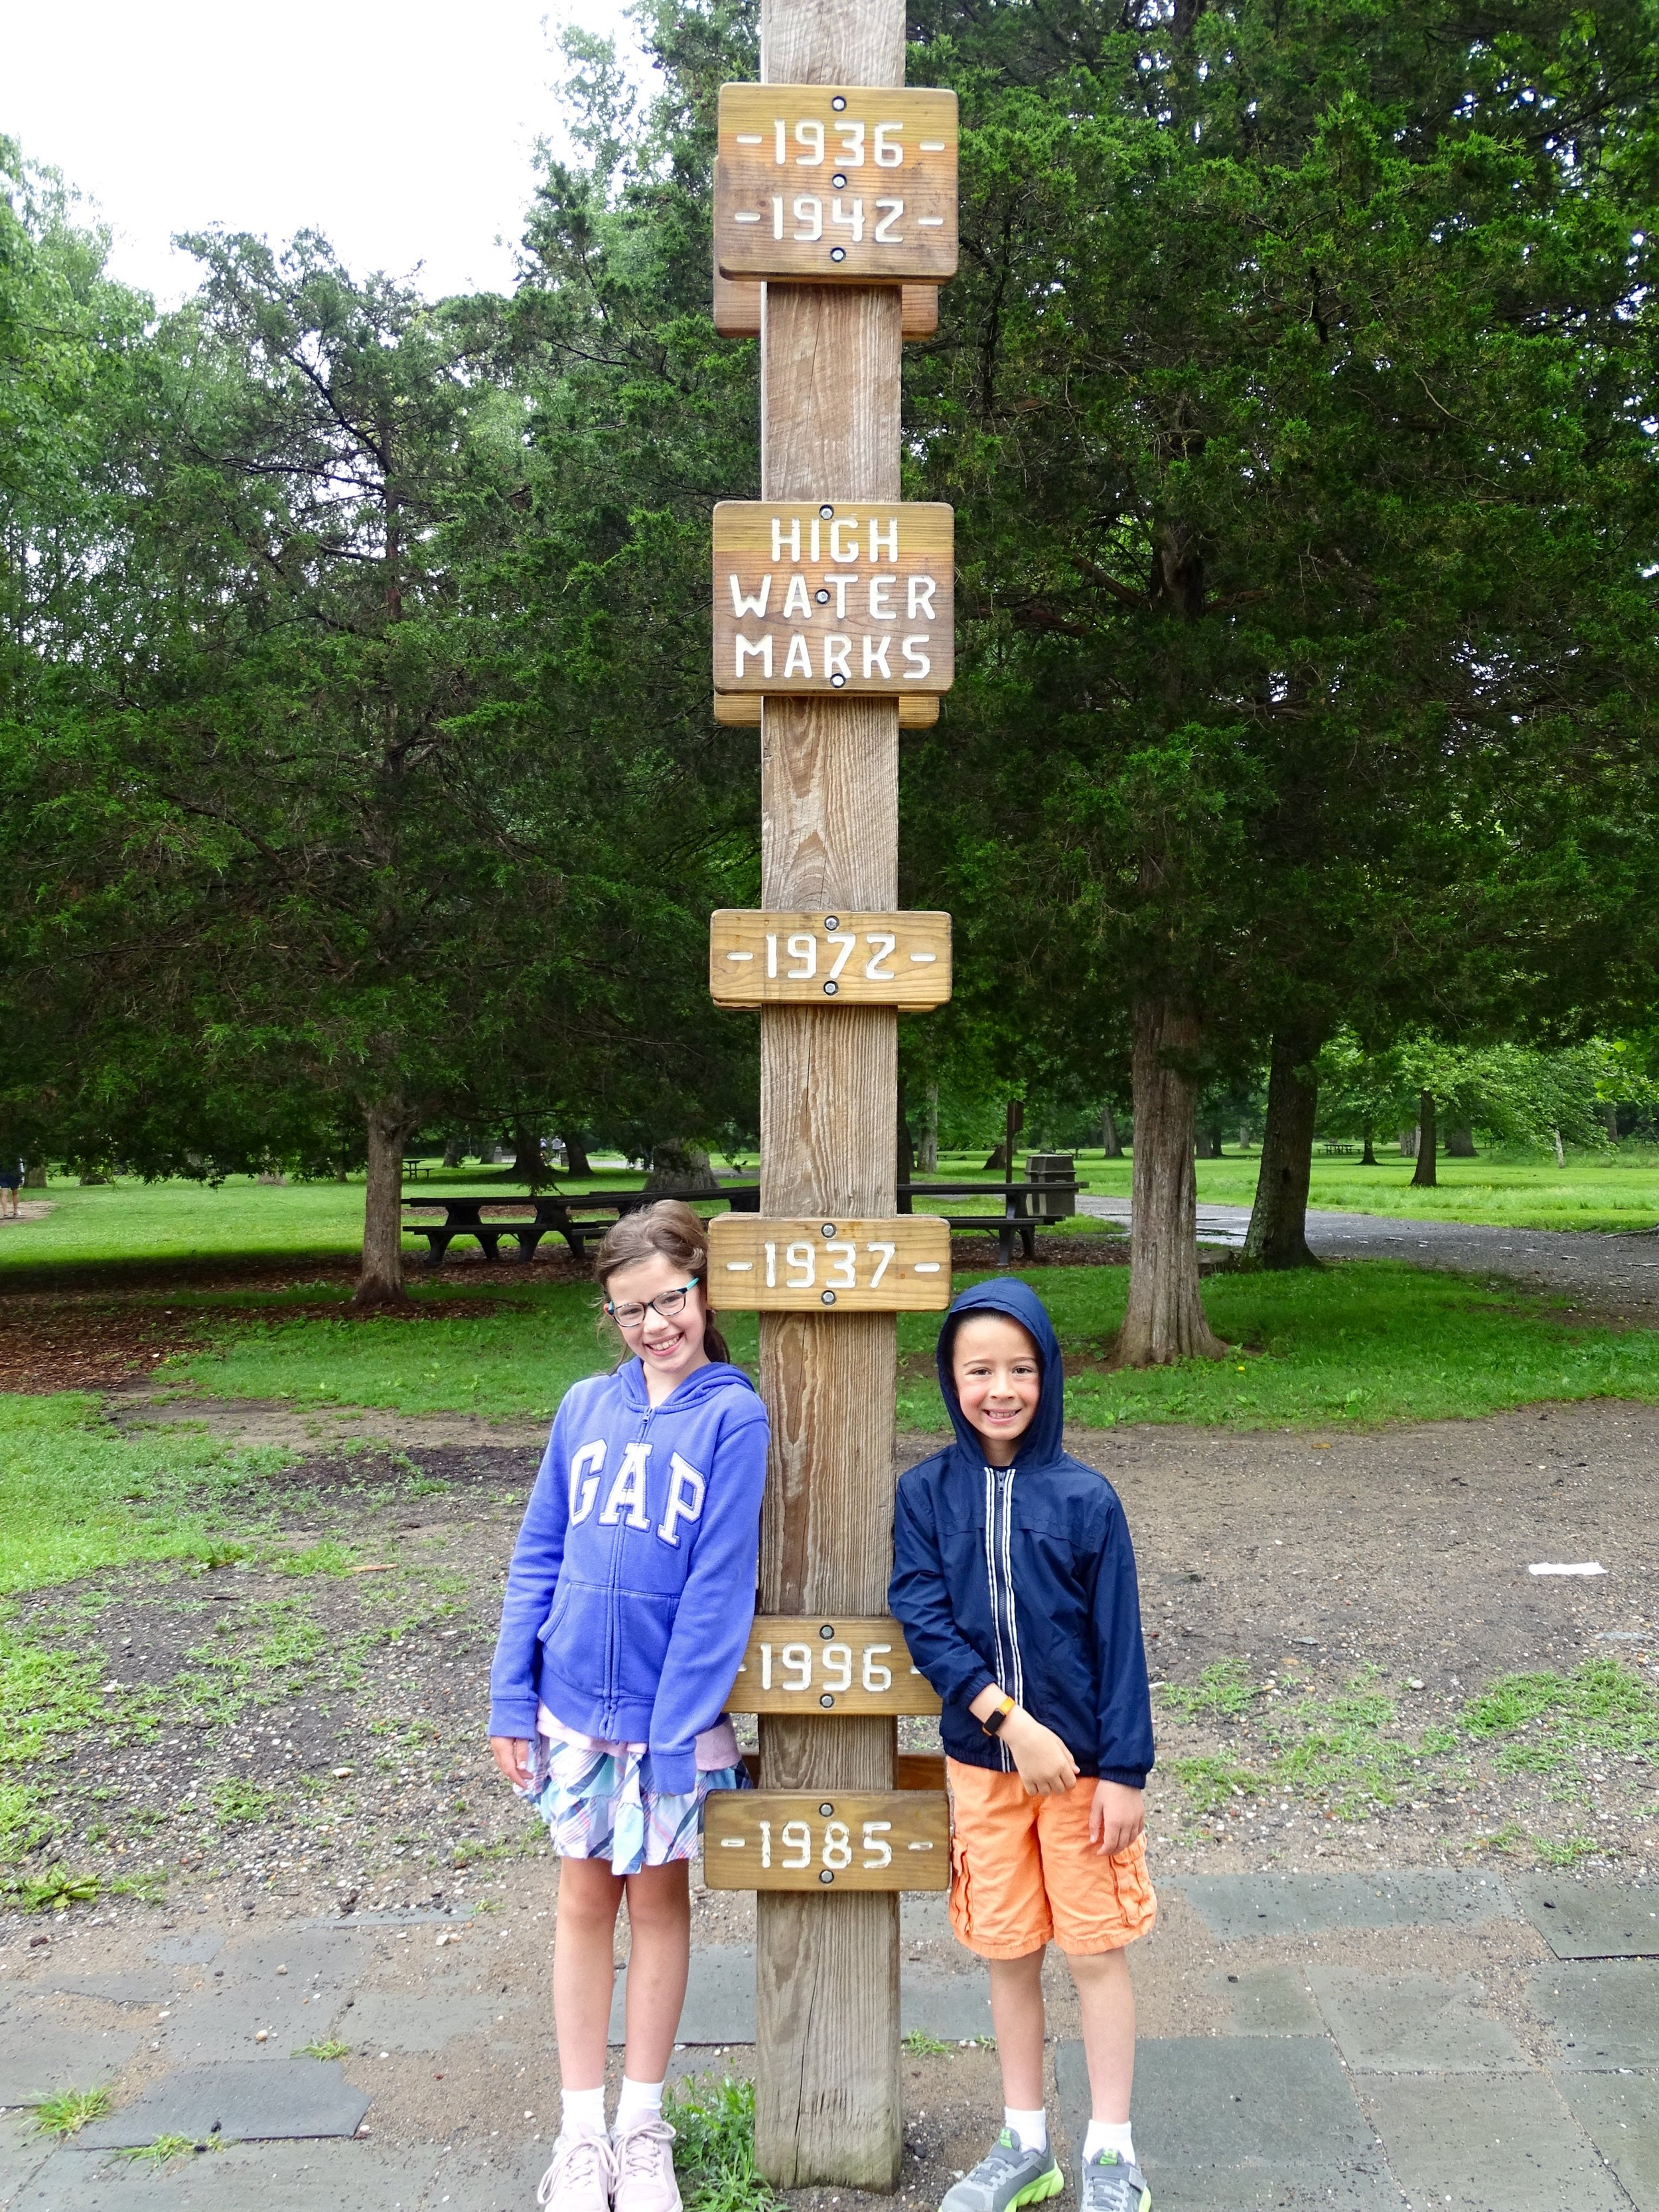 Measuring up against the flood markers- check out 1936!